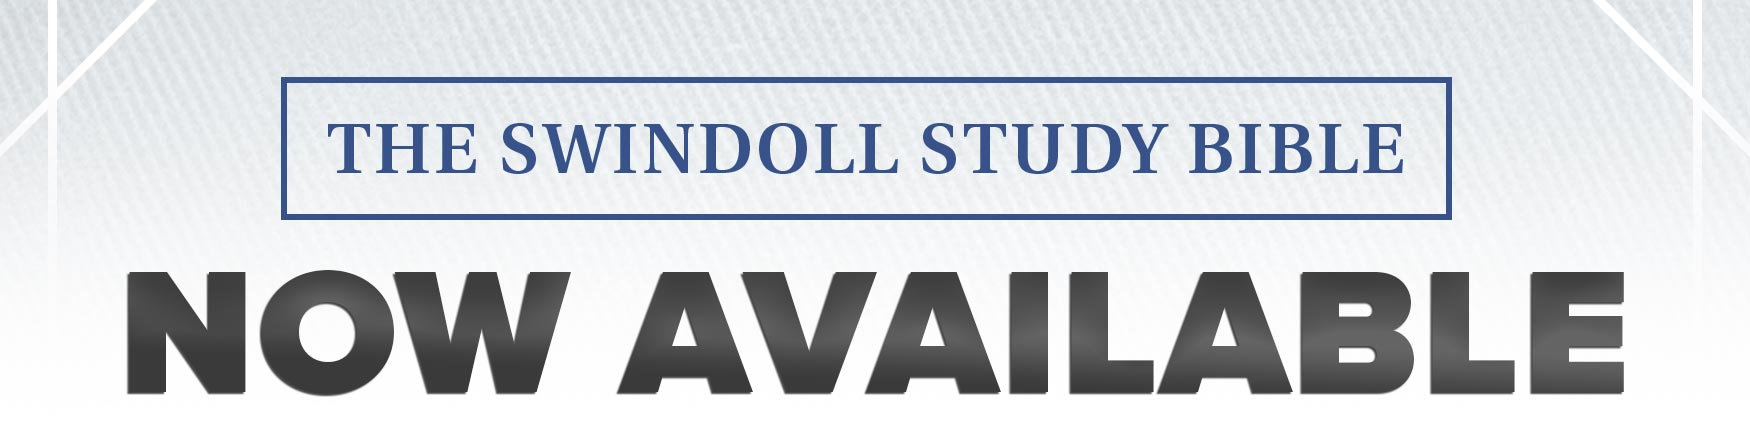 The Swindoll Study Bible -- Now Available